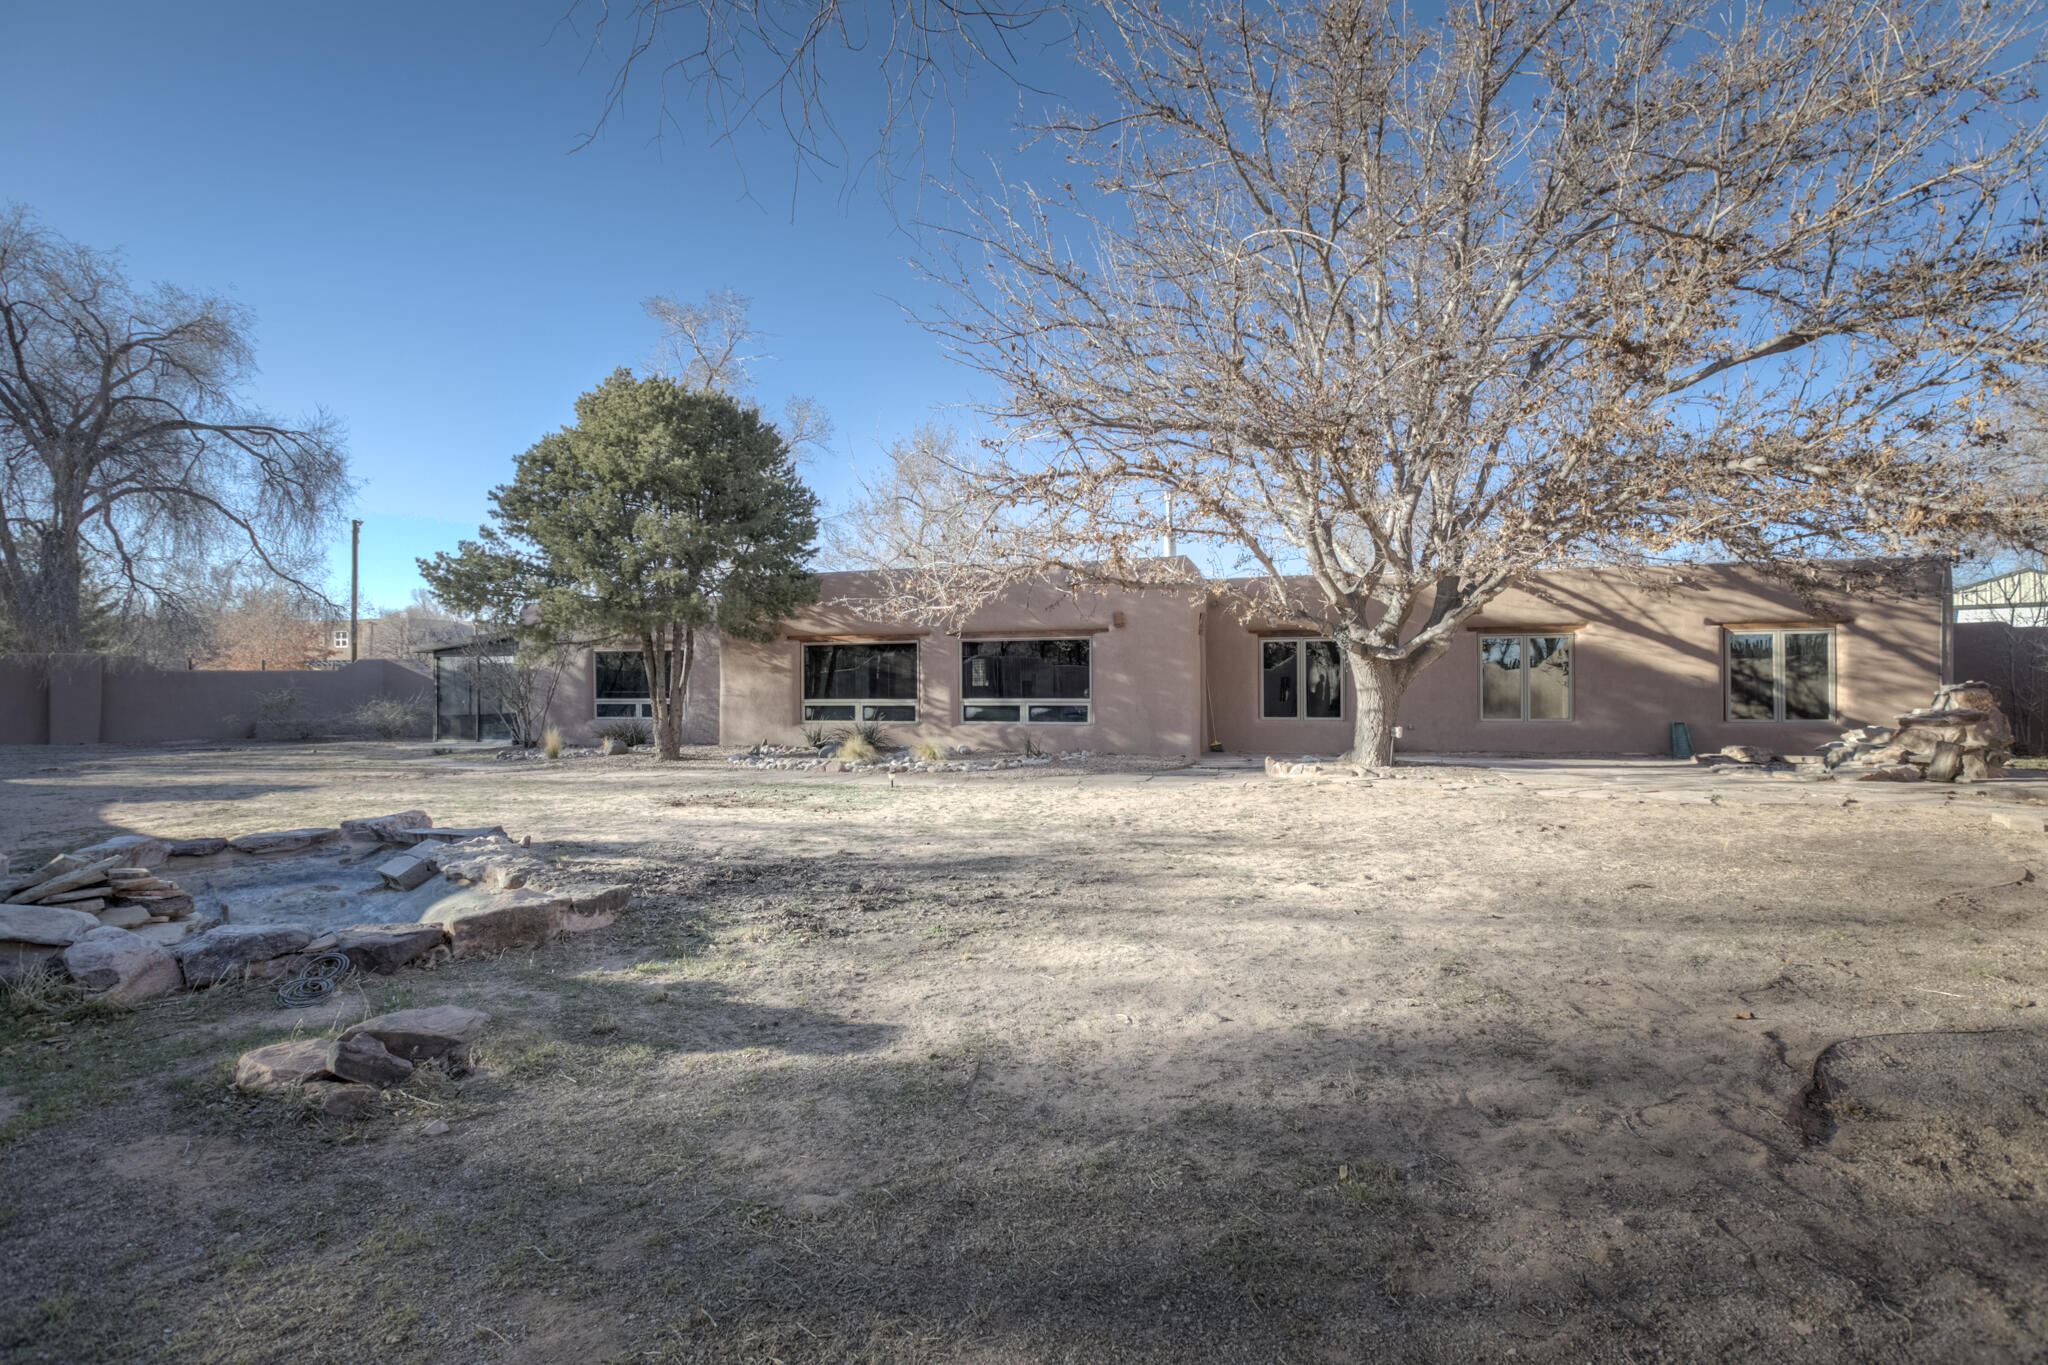 Charming Adobe home, Private Horse Property in the Corrales Greenbelt. 3 Stall Barn with Tack room, separate paddocks & pasture with access to trails and ditch irrigation. 6' adobe walled court yard. Clay wall finishes and exposed adobe. Open kitchen with granite countertops, gas Chefs stove and island. New Membrane Roof installed 1-2021, new stucco. Radiant heat and refrigerated air in the MBR and Grt Room. RV Garage with Carport.